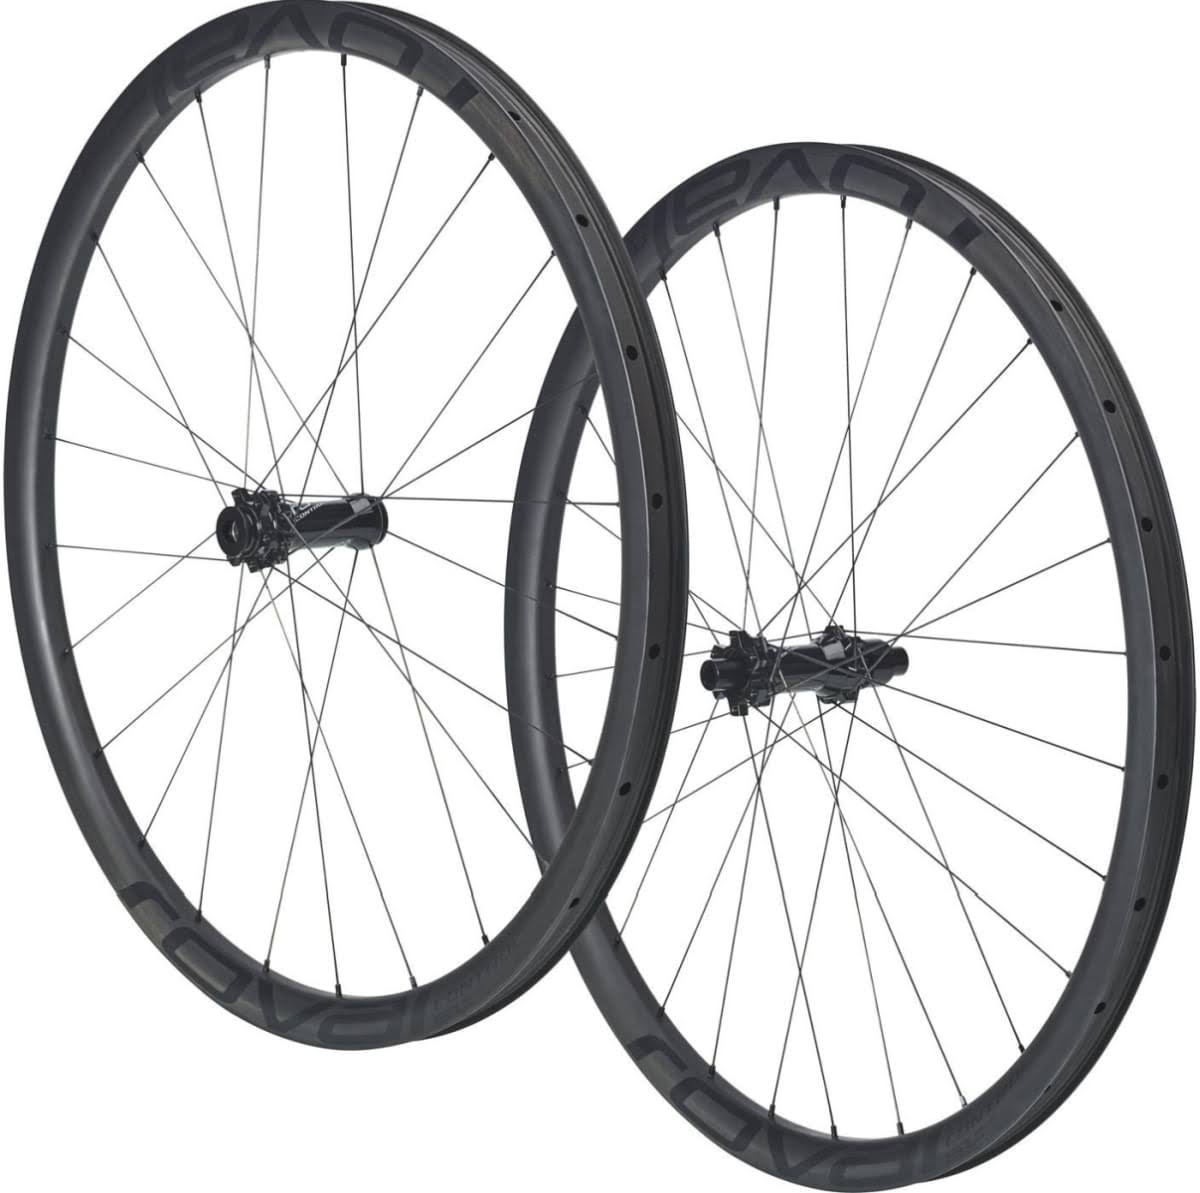 Specialized Roval Control SL 29 148 Bike Wheel Set - Carbon and Black